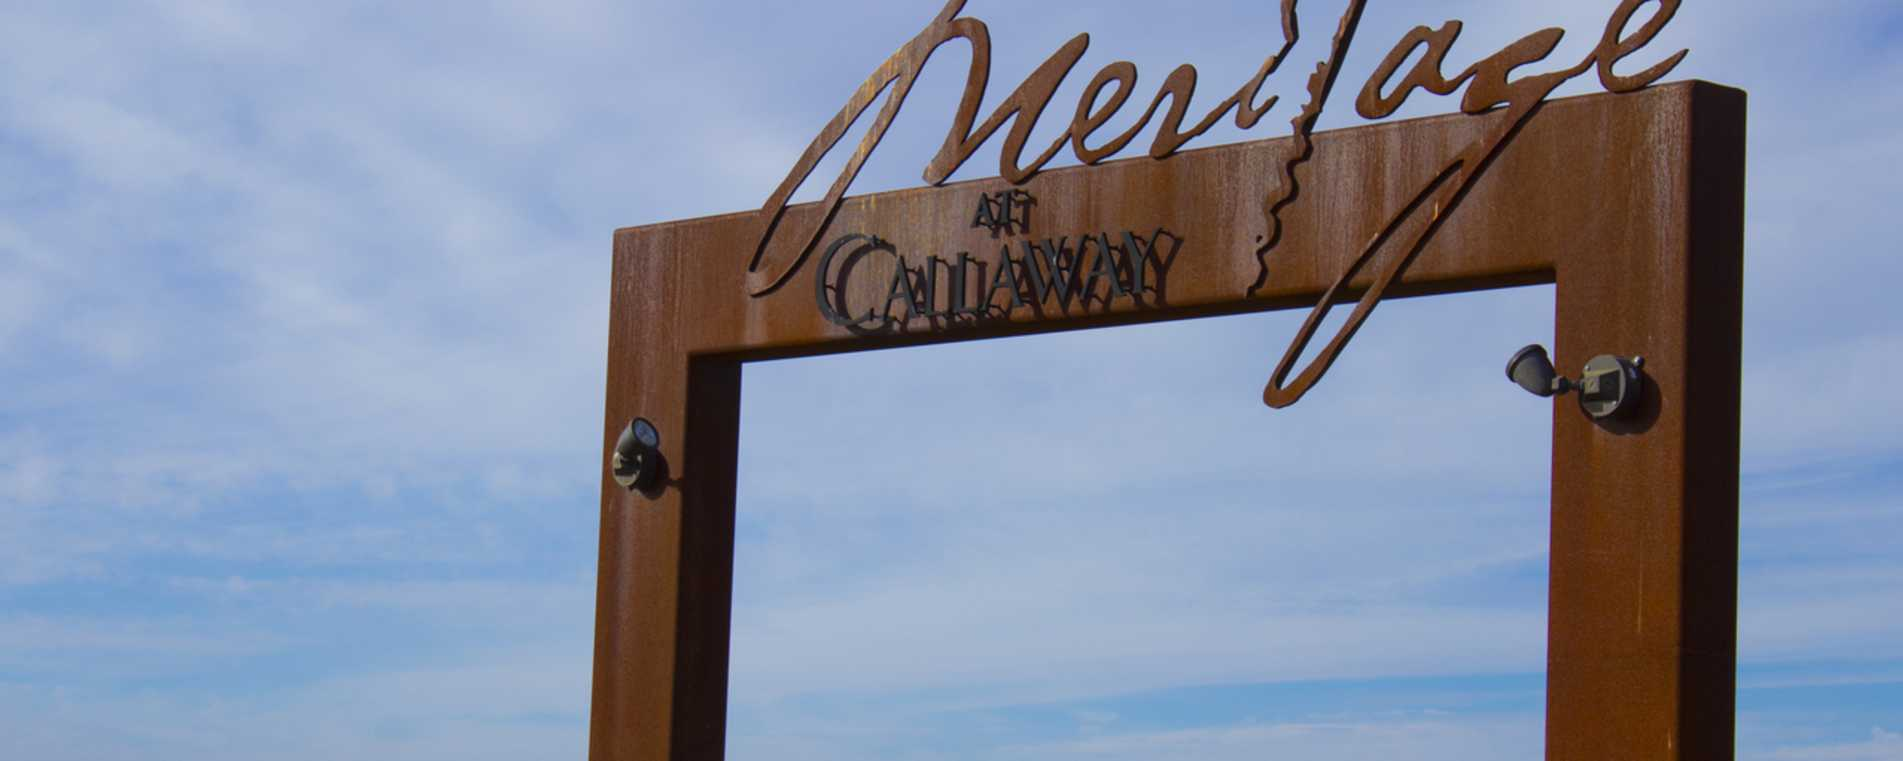 Meritage at Callaway Vineyard & Winery - Temecula